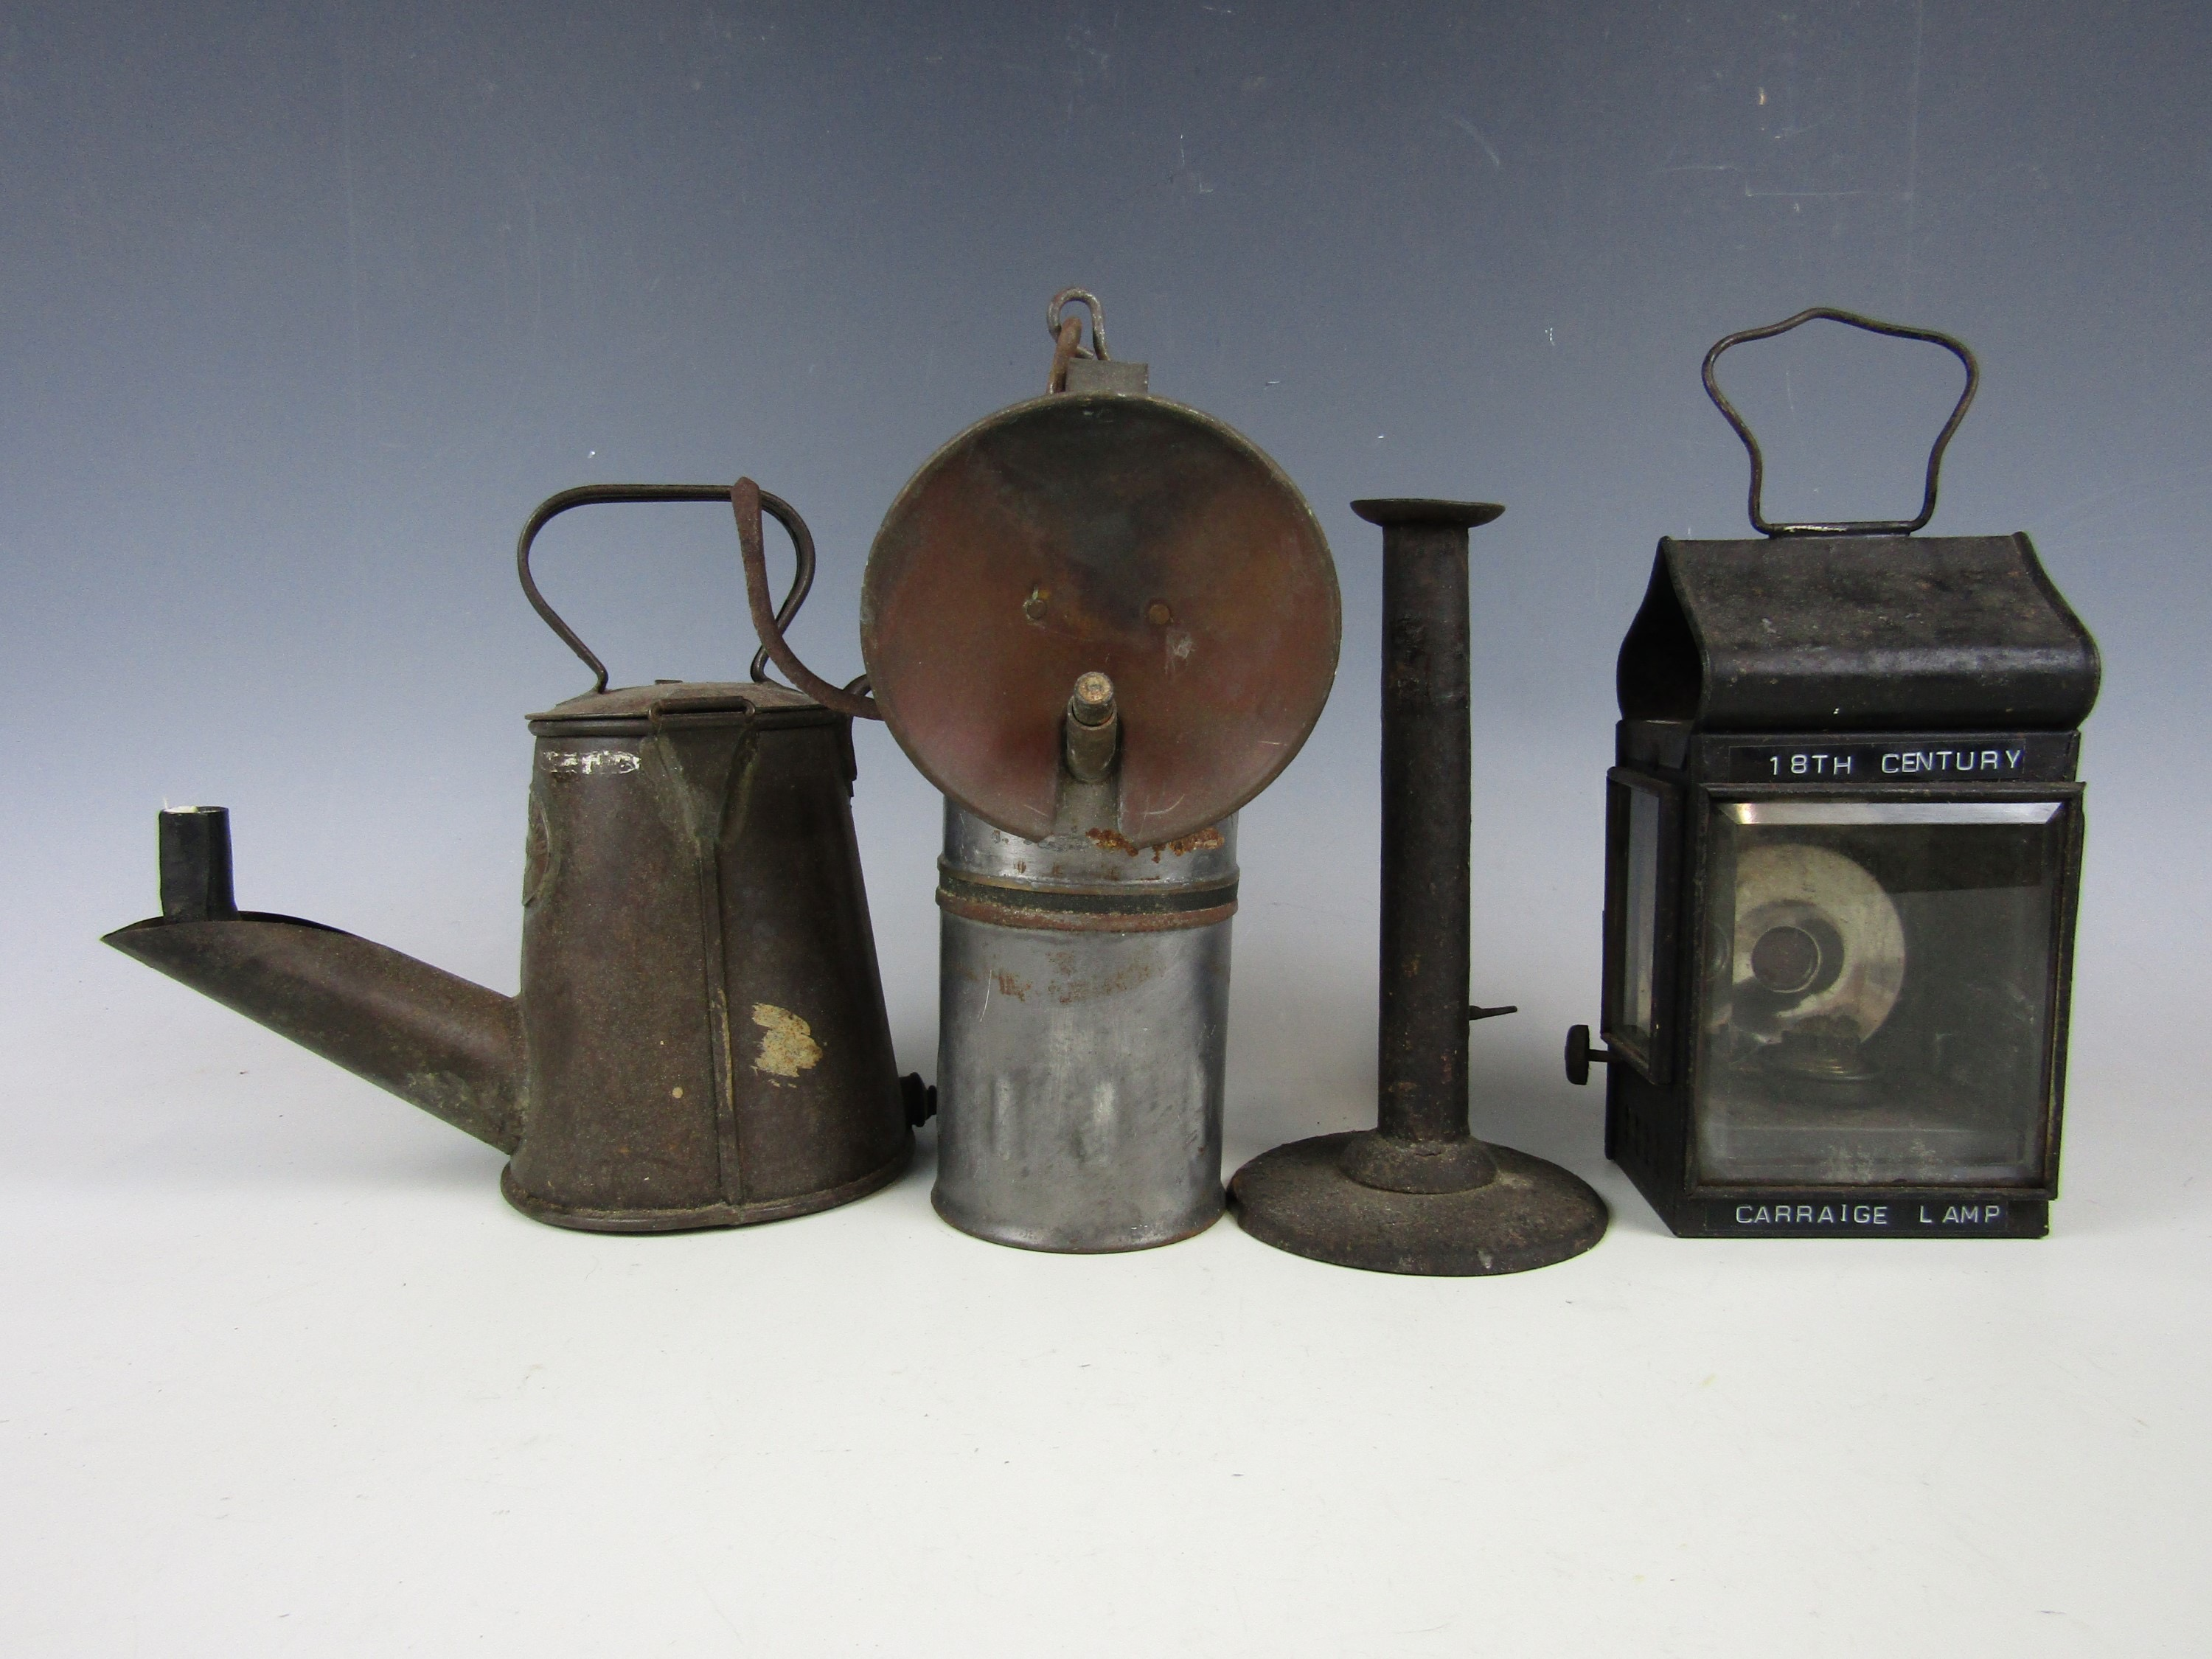 Lot 44 - A spout lamp by J Mills and Son of Millom, a steel elide-eject candlestick, a carriage lamp and a